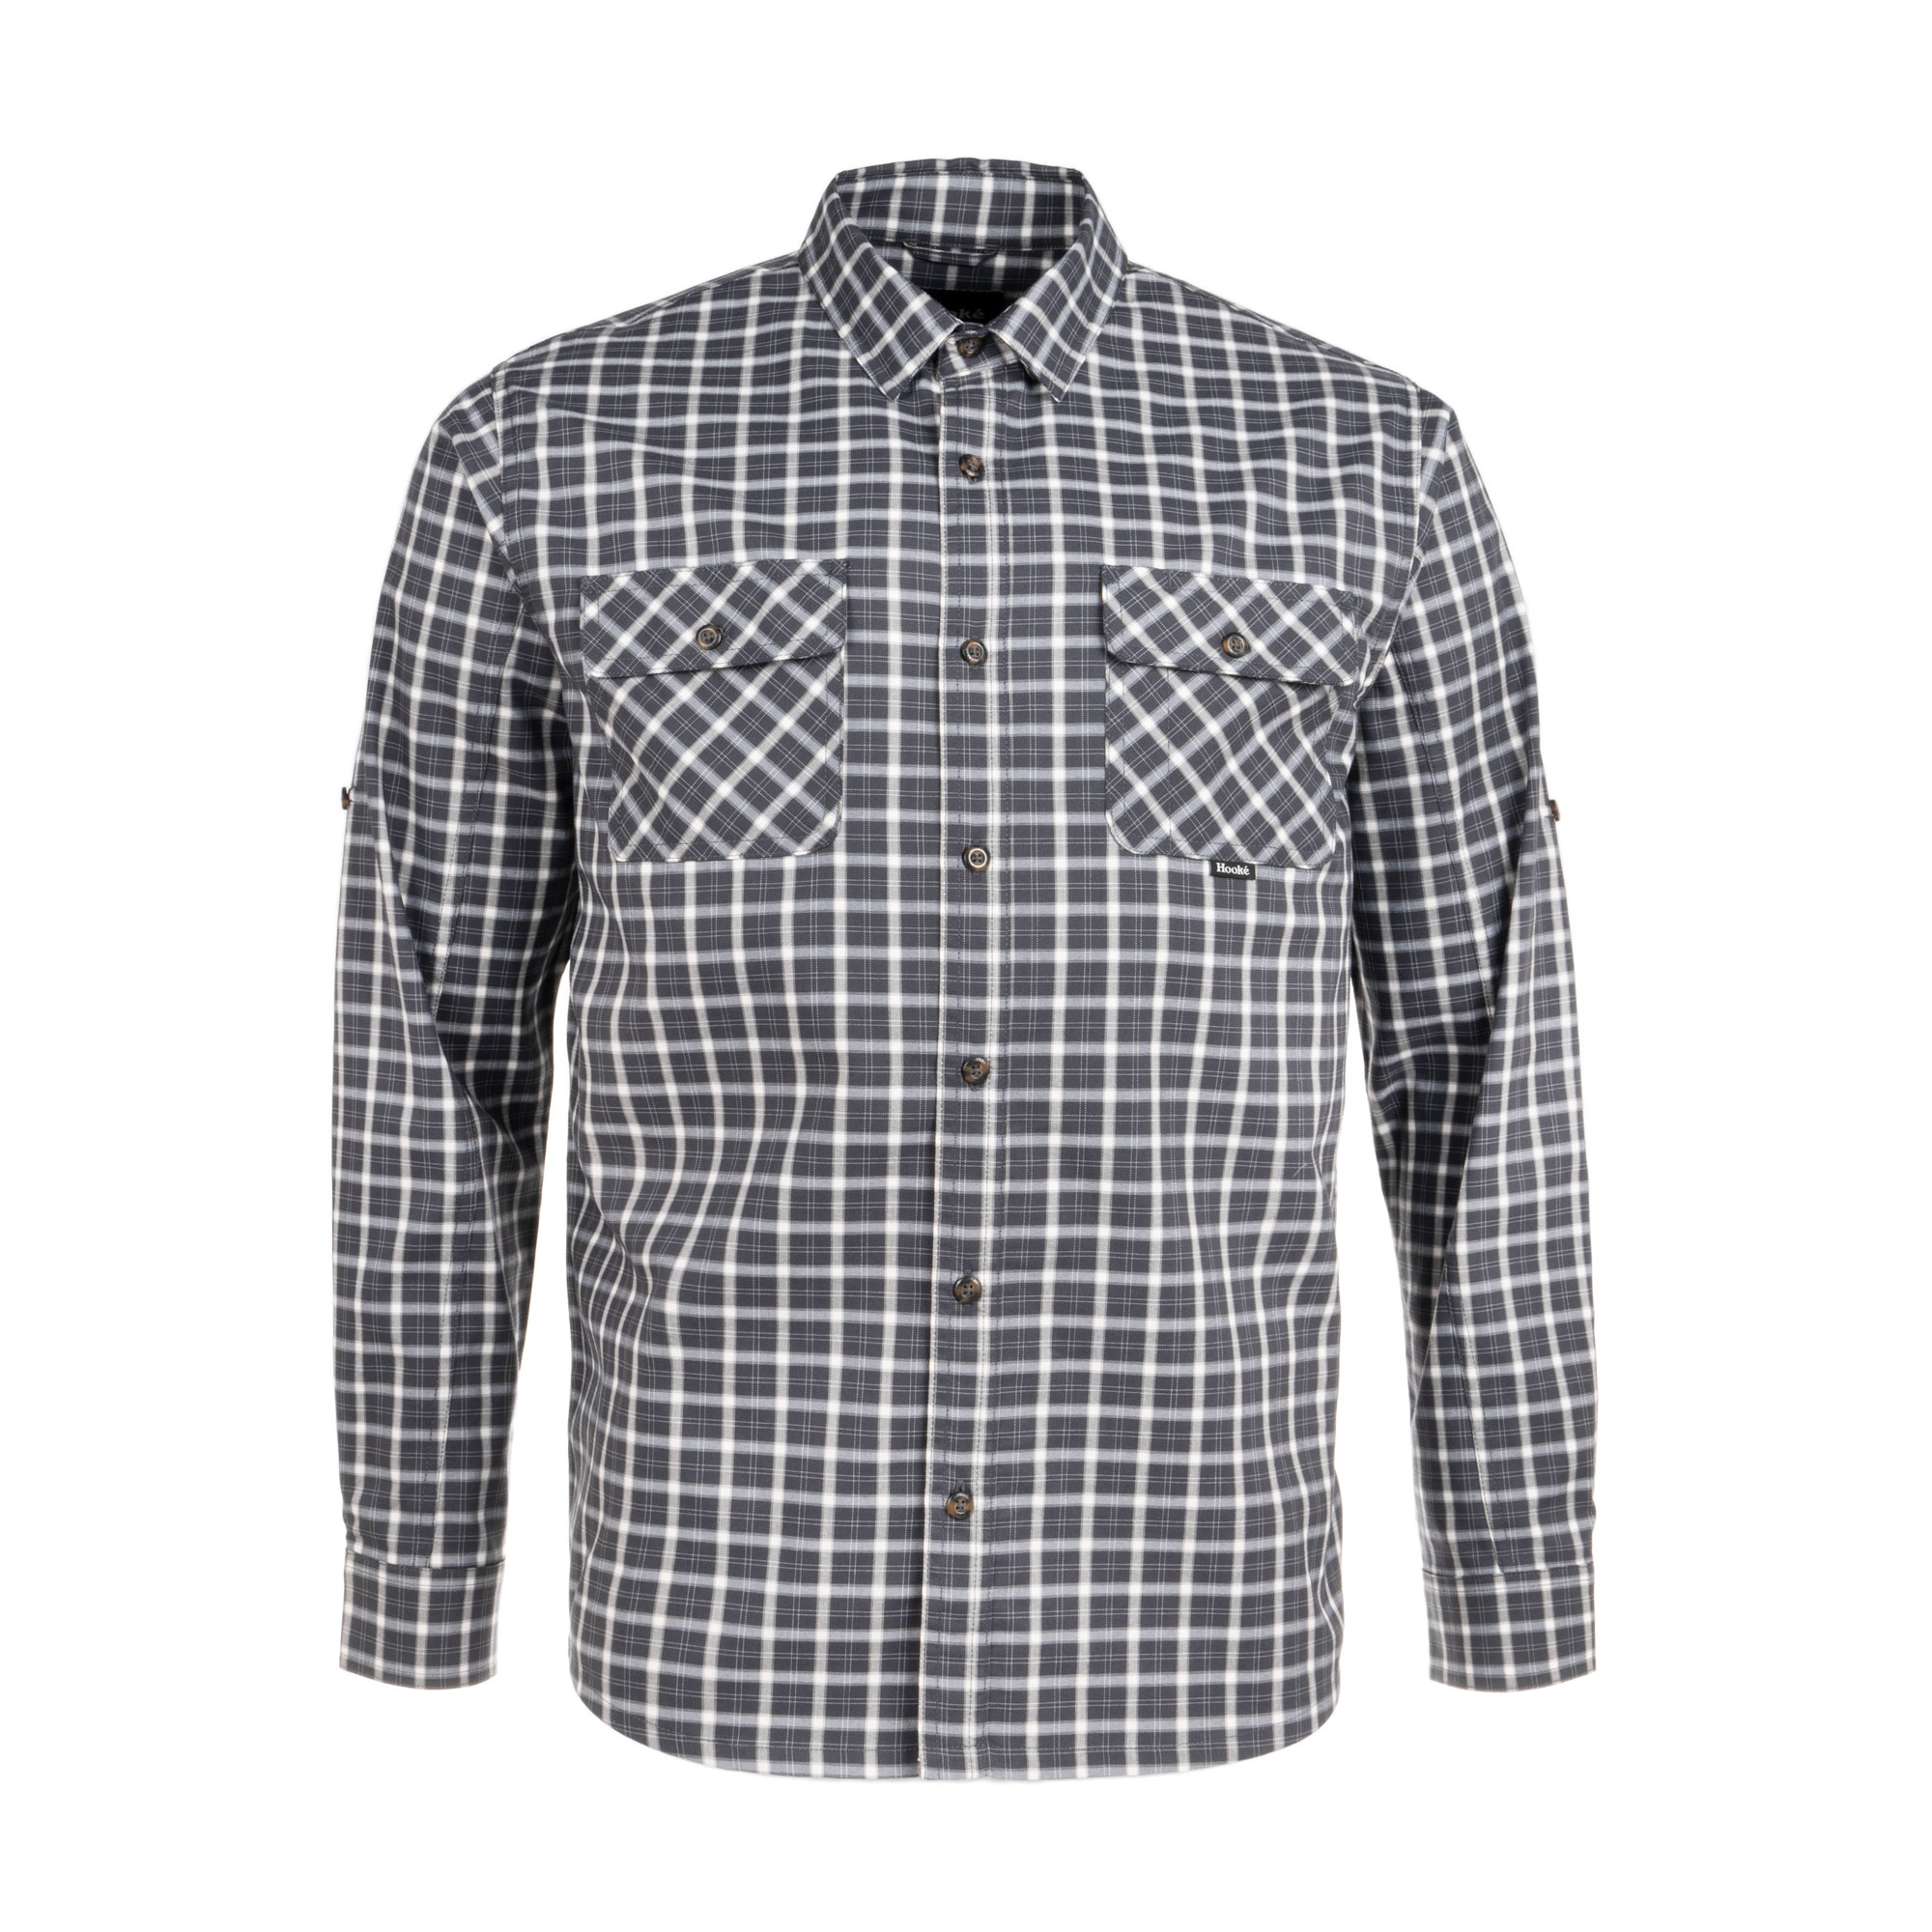 York Shirt Charcoal Plaid